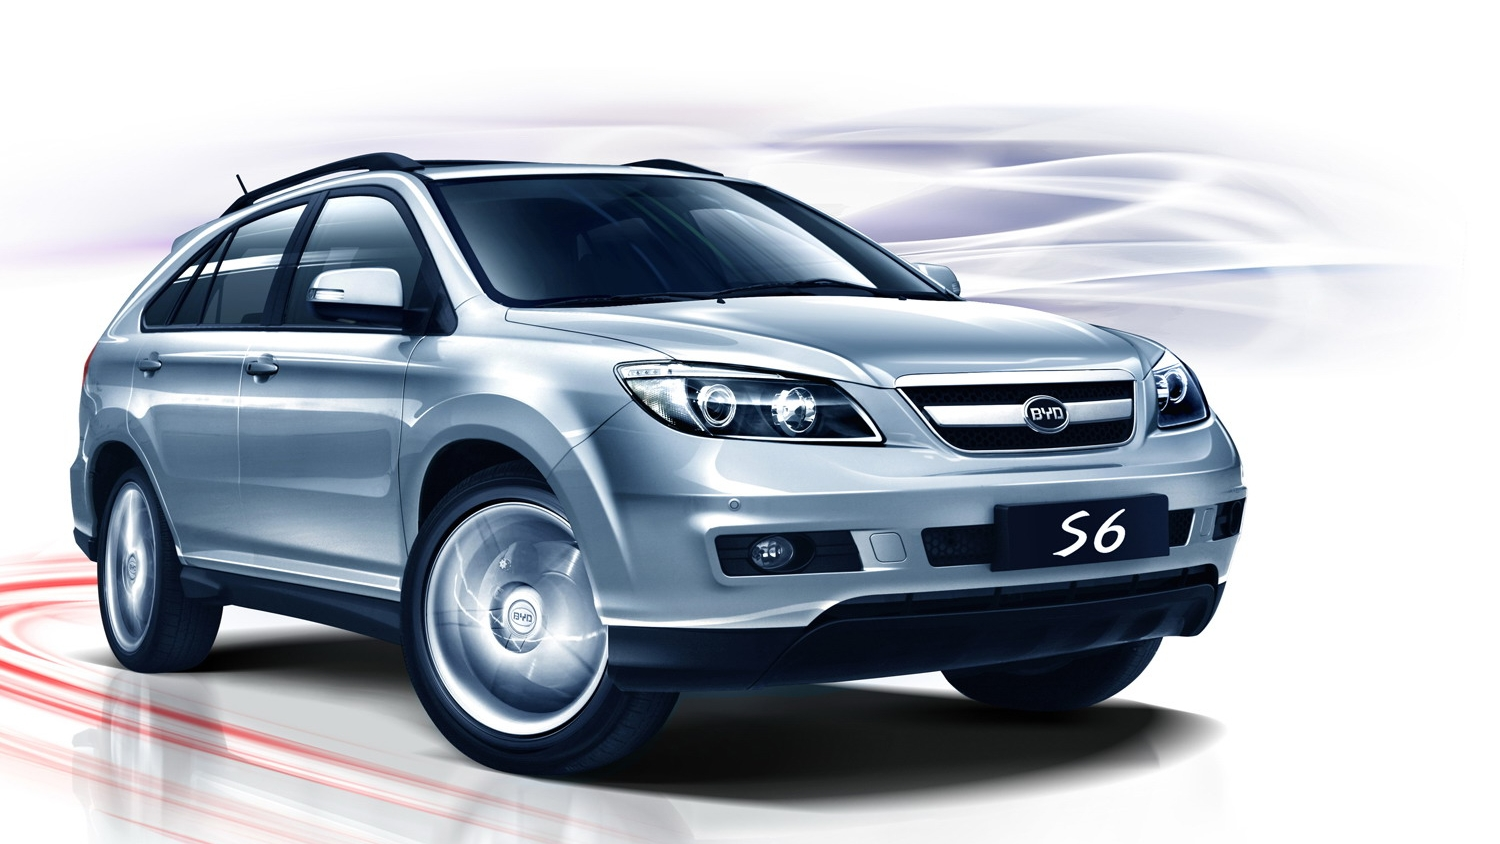 The byd s6 was first introduced in 2010 at the guangzhou auto show in china before hitting the chinese market in 2011 the suv enjoyed great sales success